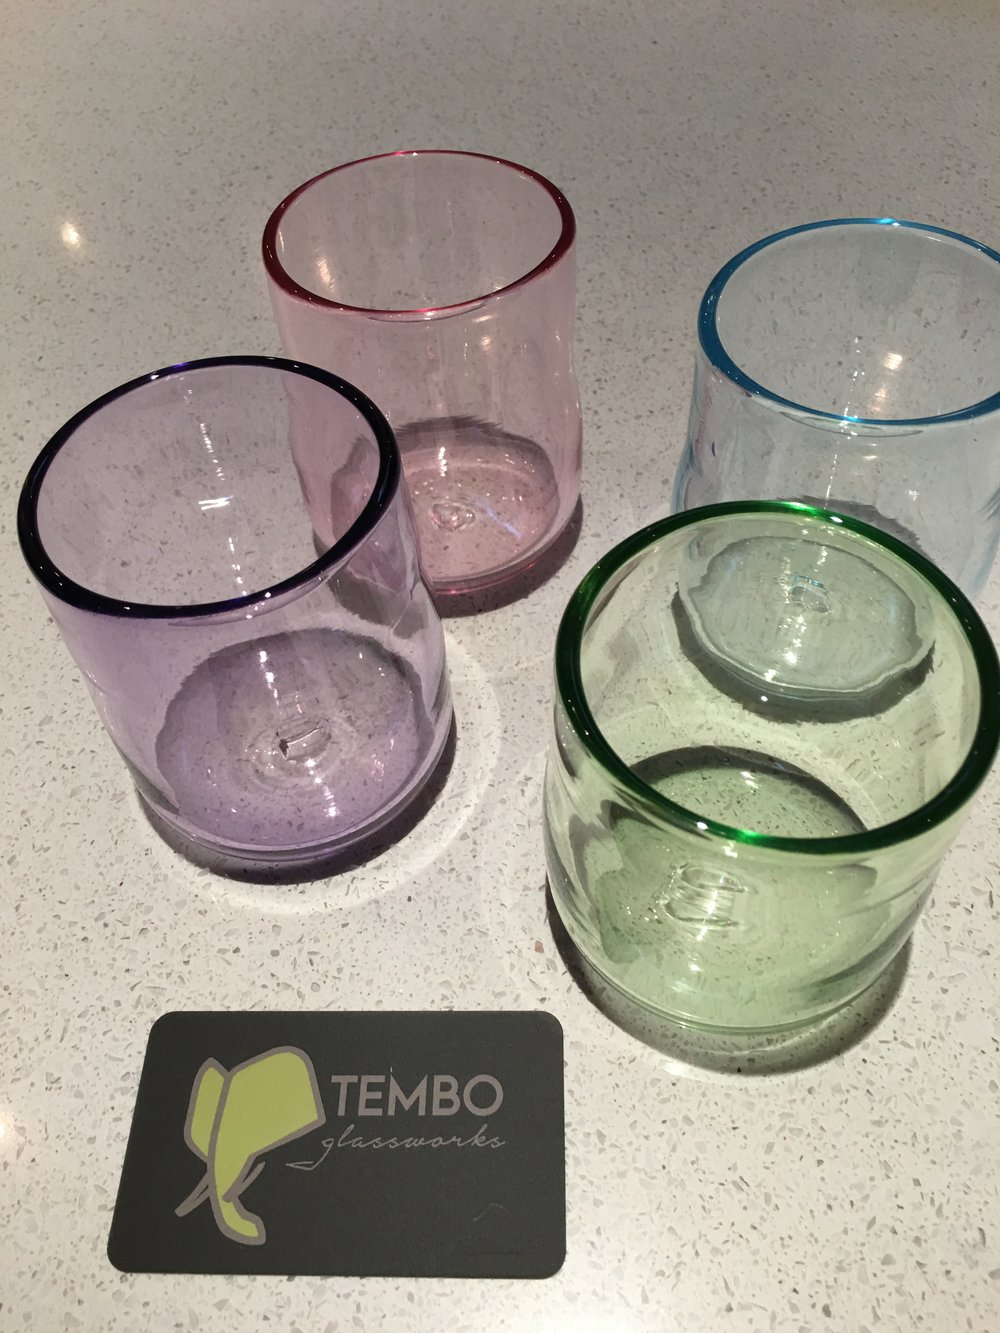 Fun-sized tumblers for margaritas, mojitos and the like.   We use very clean, transparent glass powders to tint these glasses.  Some of our favorite colors are Gold Ruby, Bristol Green, Brilliant Copper Blue, Salmon, Brilliant Yellow and Hyacinth Violet